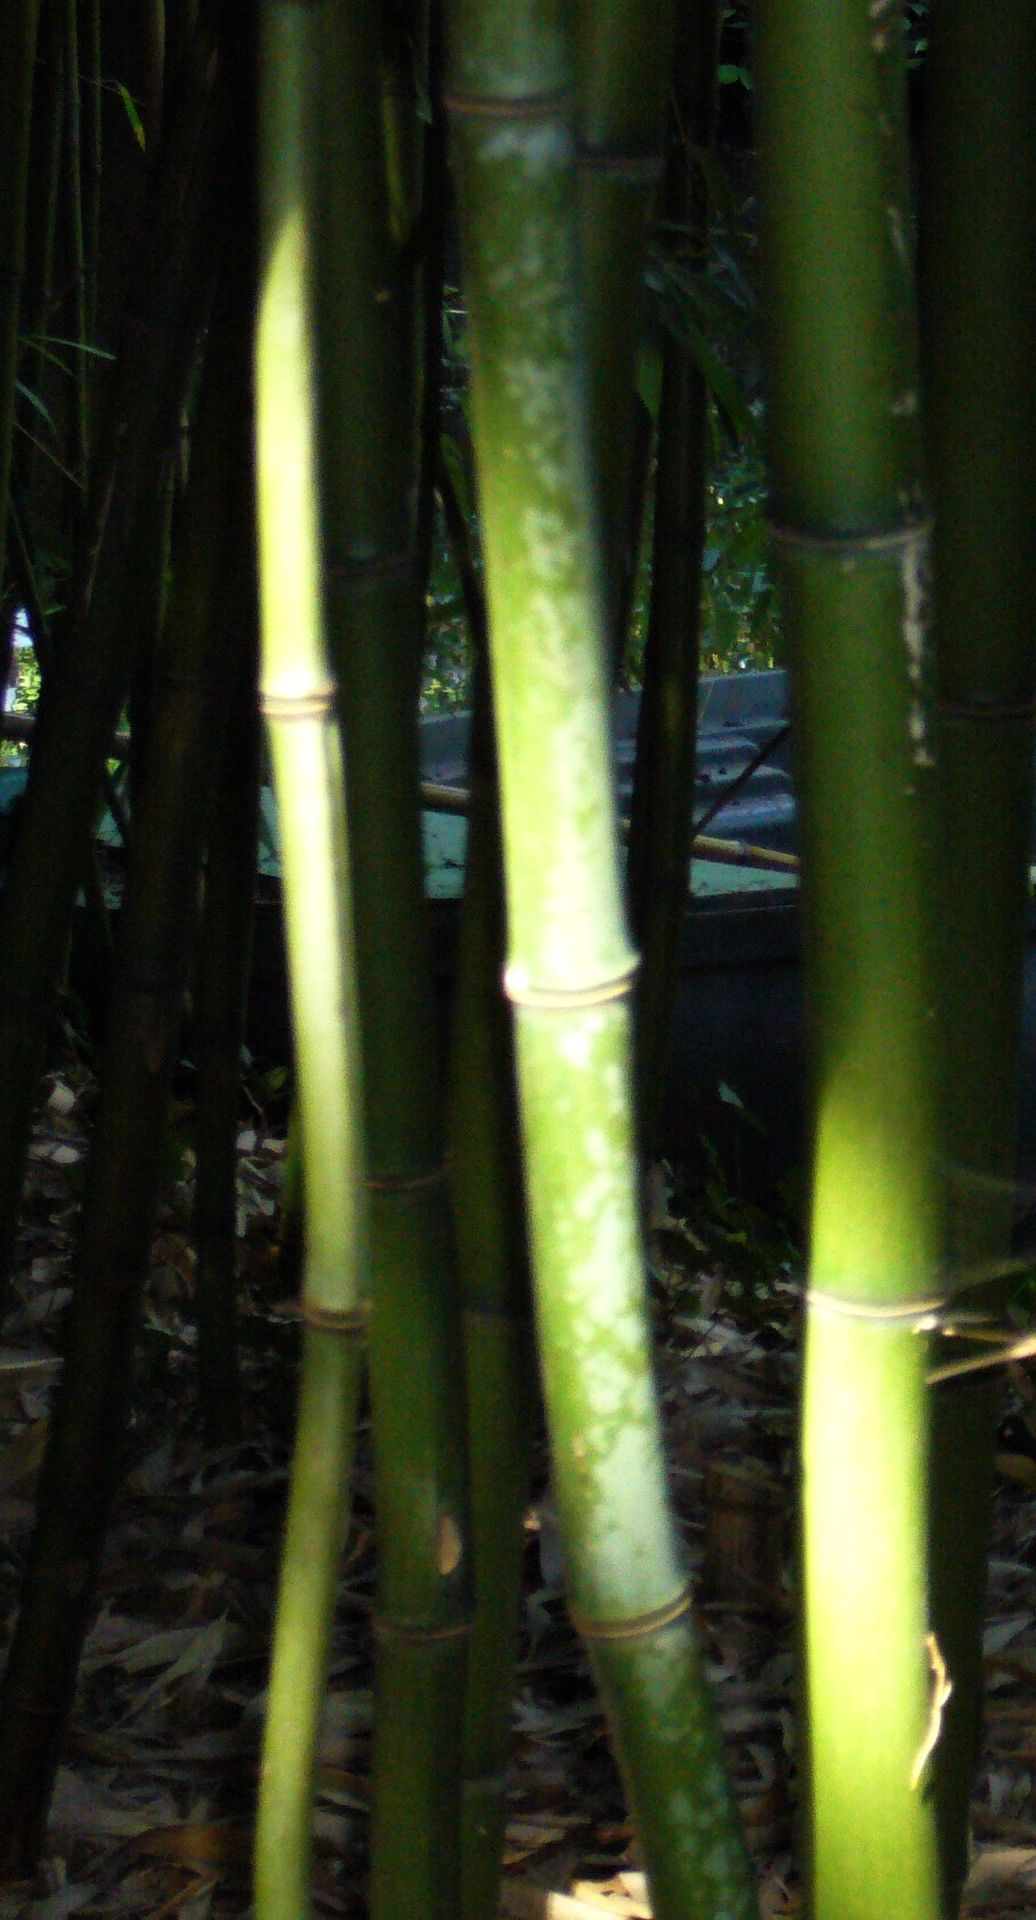 Bamboo Claude Monet's garden at Giverny By yama-bato